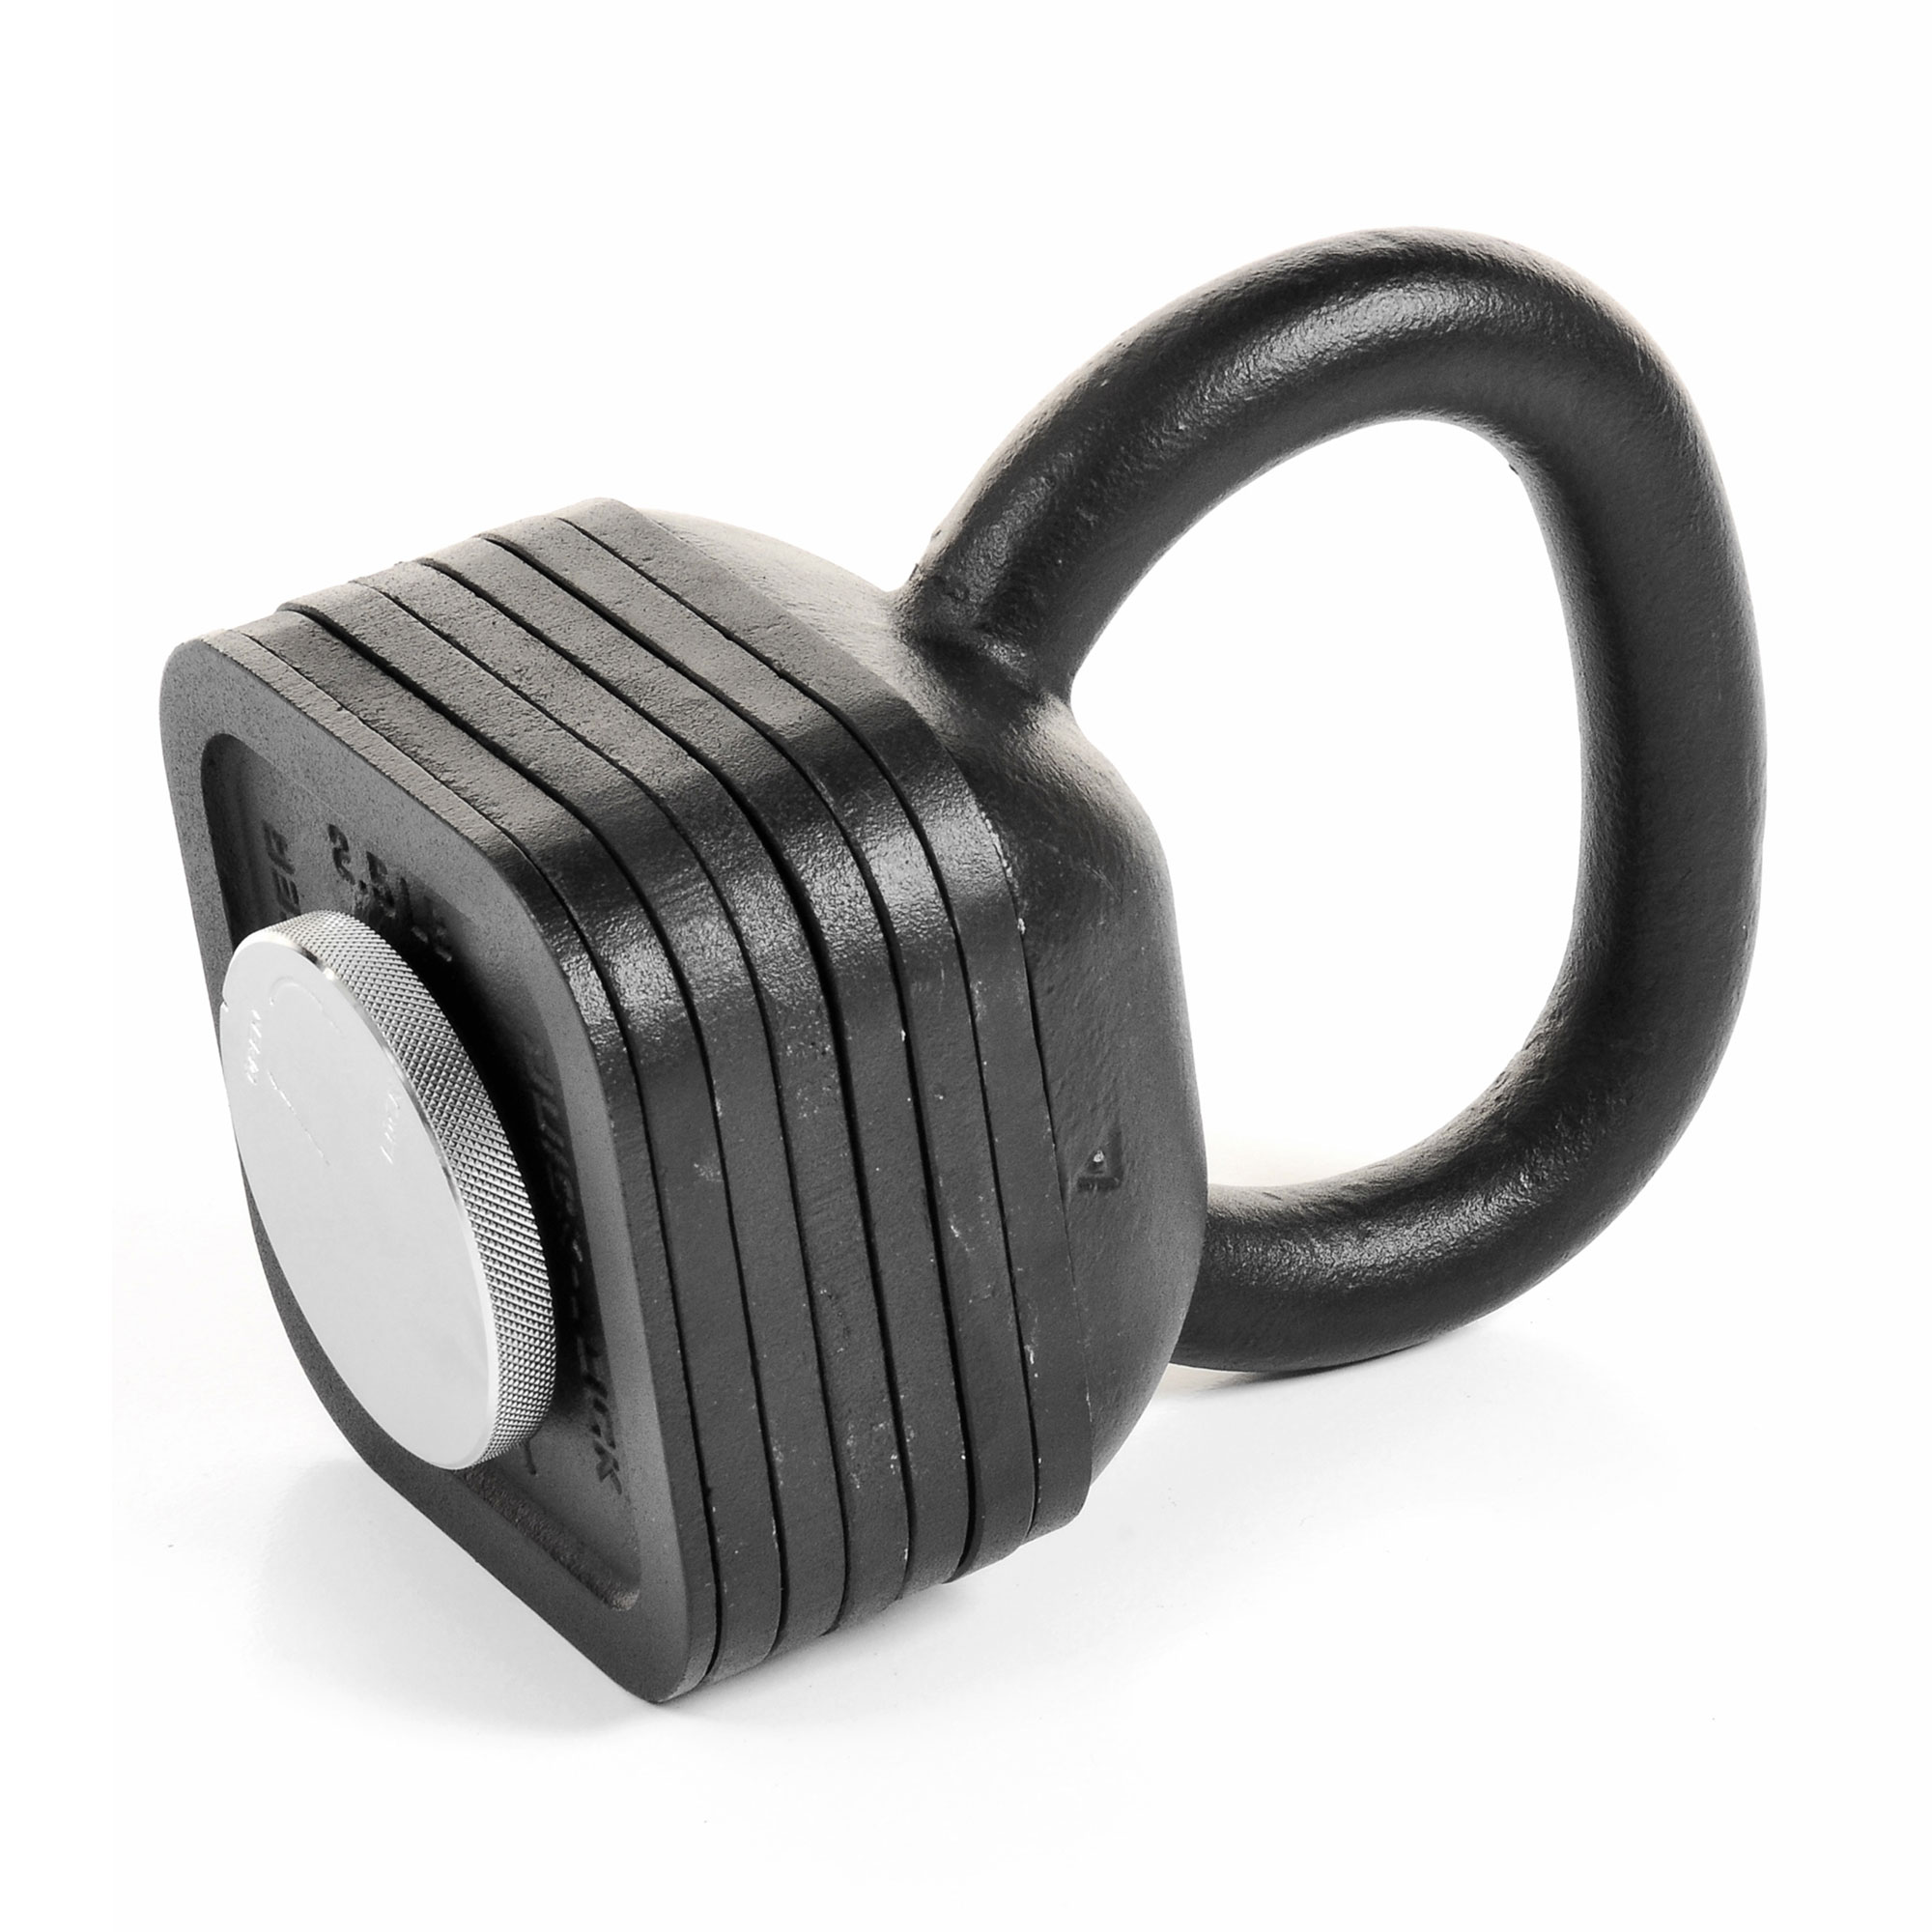 IronmasterUK quick-lock kettlebell with plates